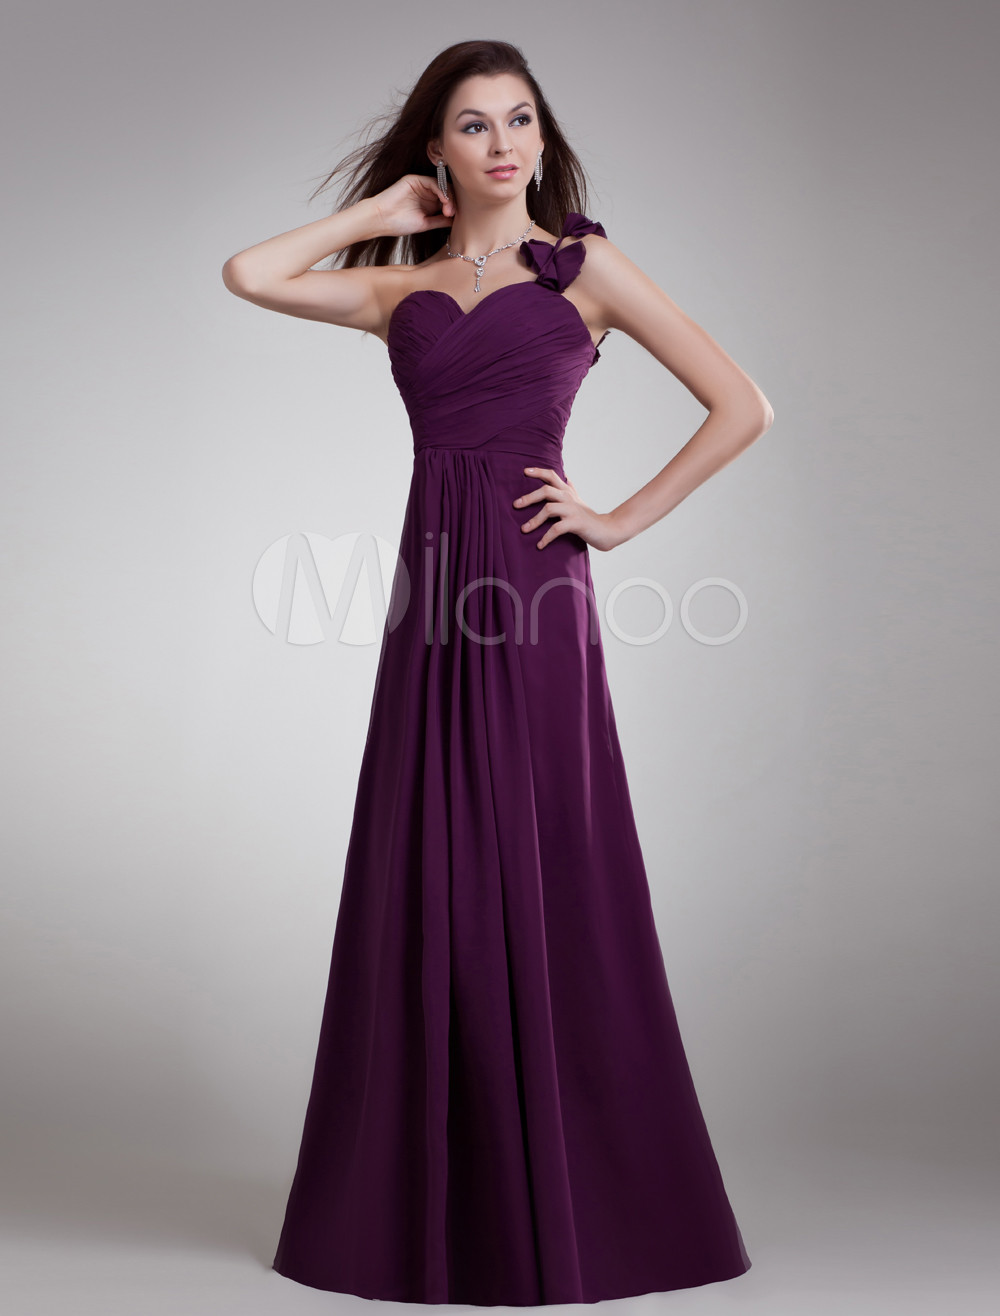 Buy Grape A-line Floor-Length Evening Dress with Charming Cascading Ruffle Sweetheart Neck for $117.79 in Milanoo store